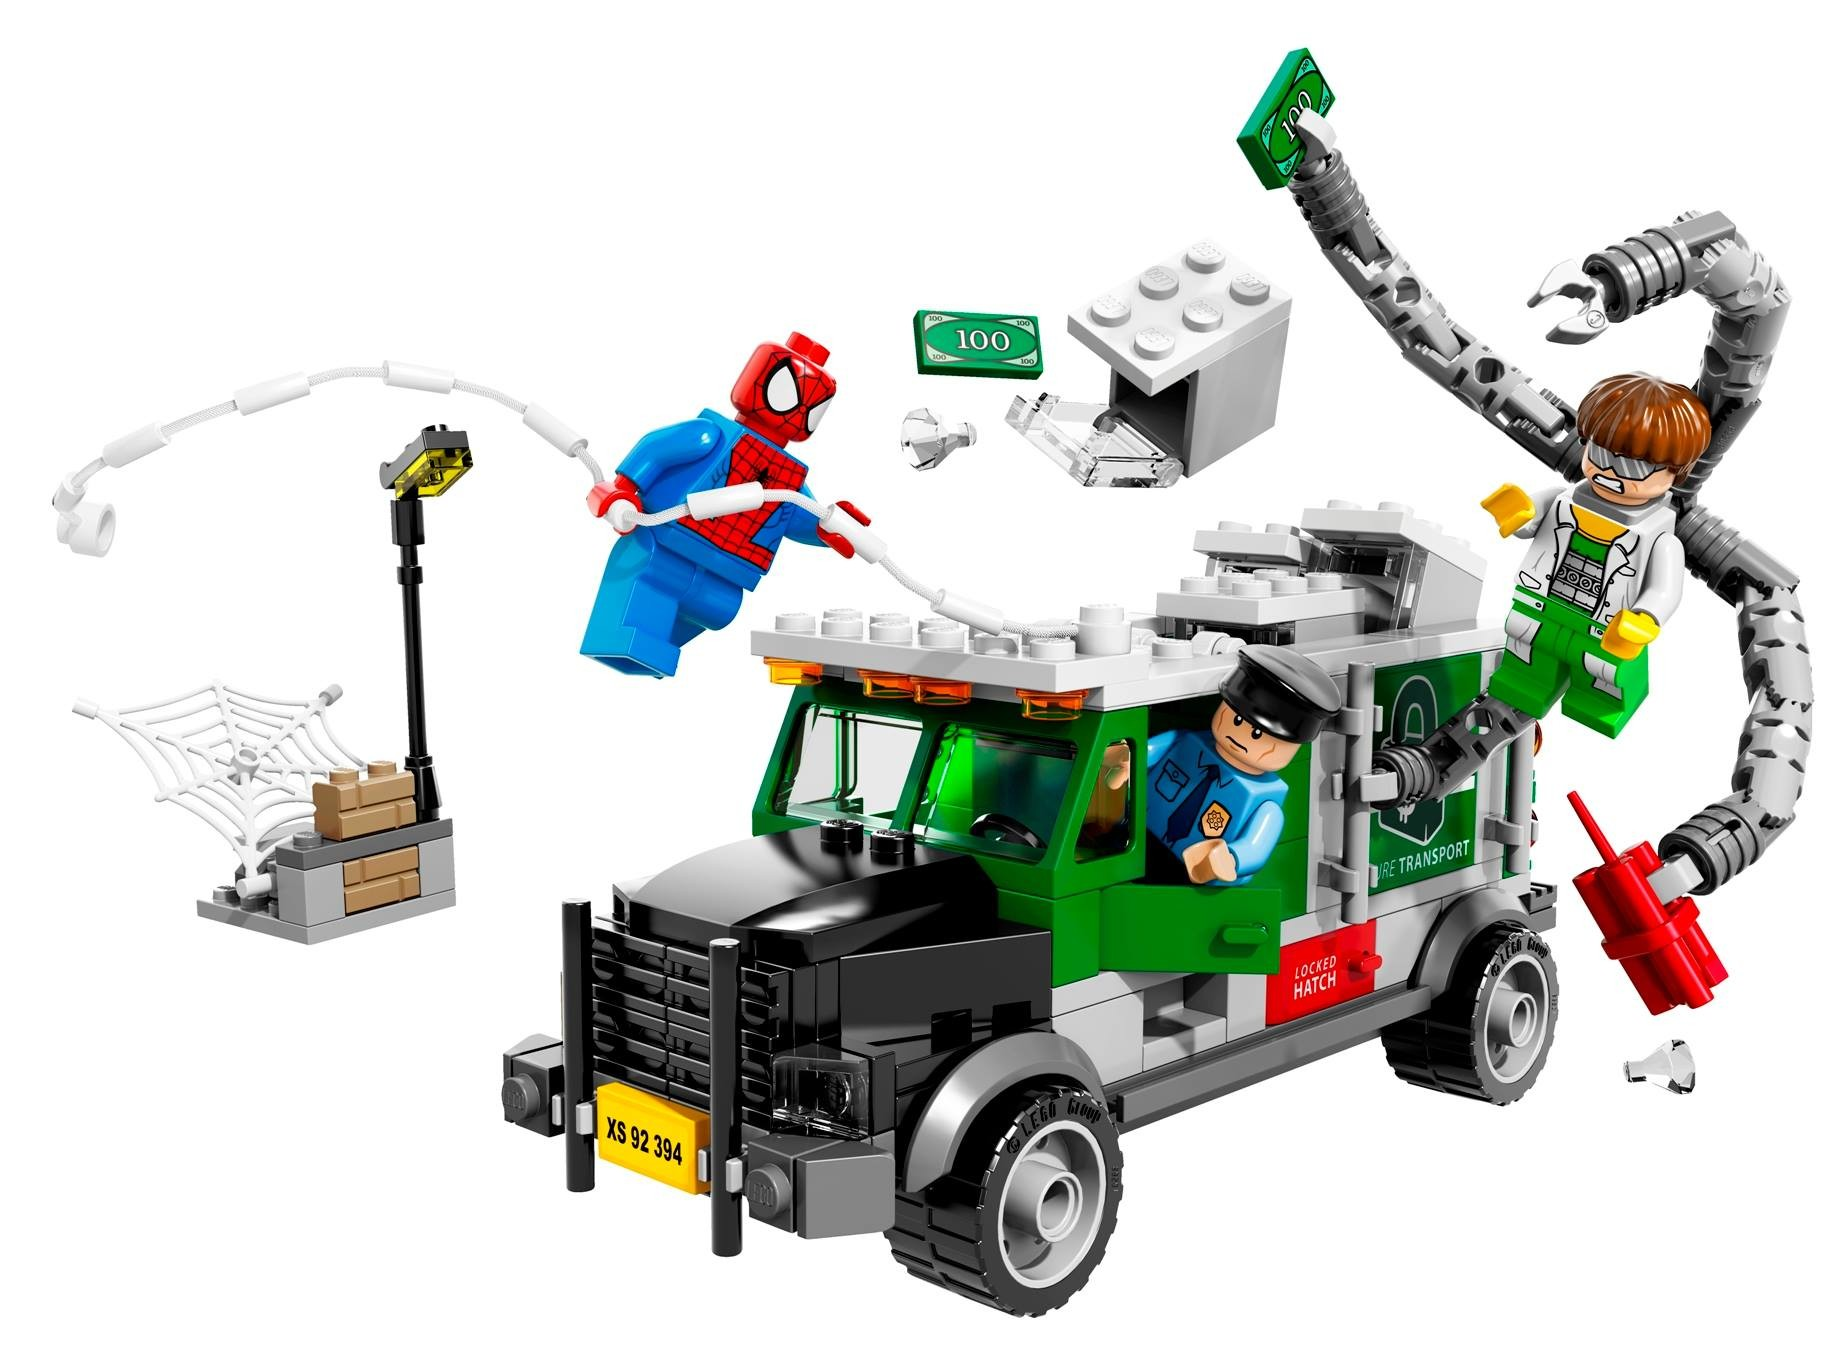 http://marveltoynews.com/wp-content/uploads/2013/12/2014-LEGO-Marvel-Spider-Man-Doc-Ock-Truck-Heist-76015-Set-e1387219393738.jpg